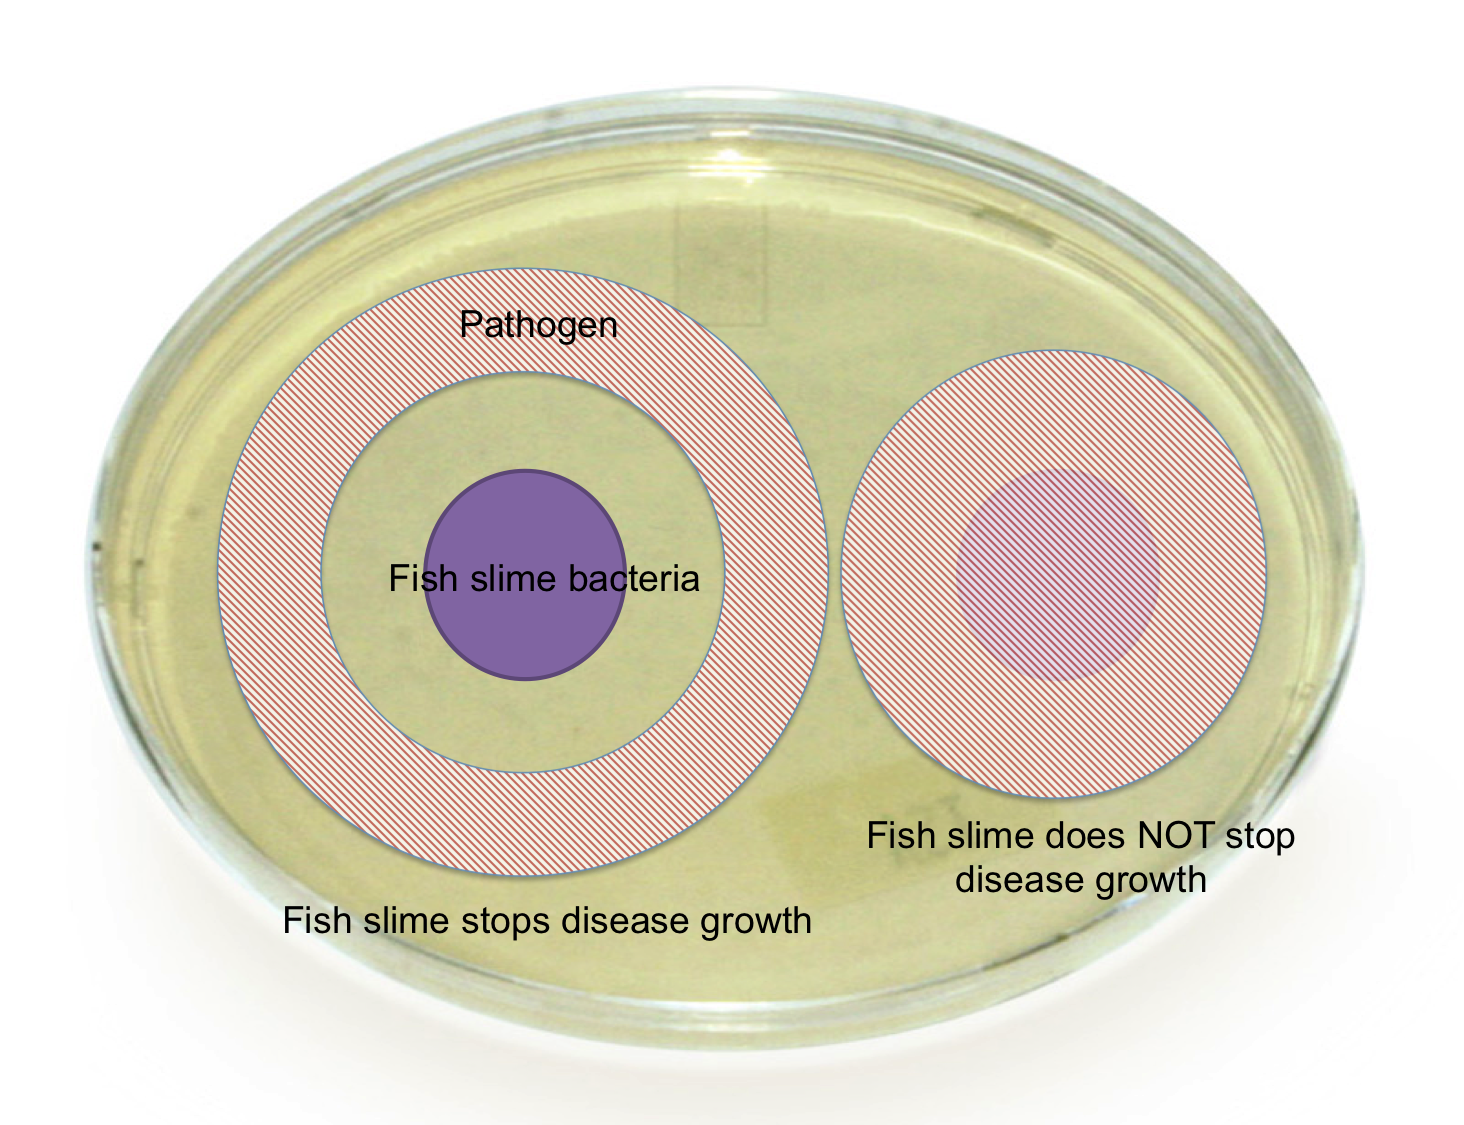 Figure 2 – A schematic showing what it would look like if the fish slime bacteria (purple) did stop the growth of disease (red circle, left) or did not stop the growth of disease (right).